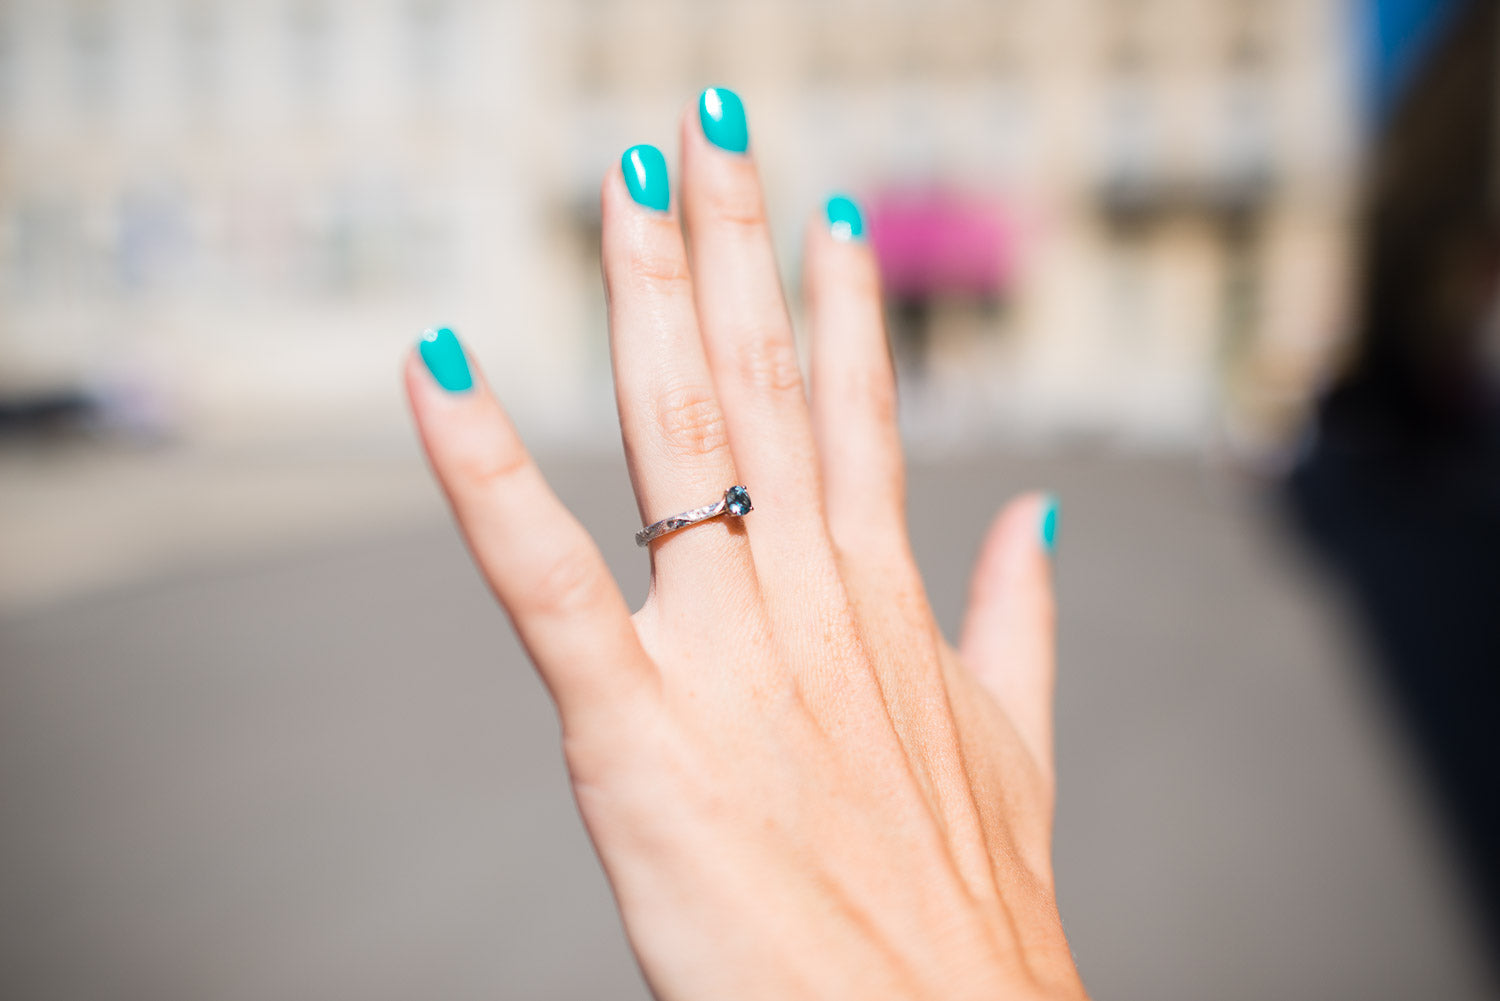 3 things to consider when proposing – Time, Place, Ring